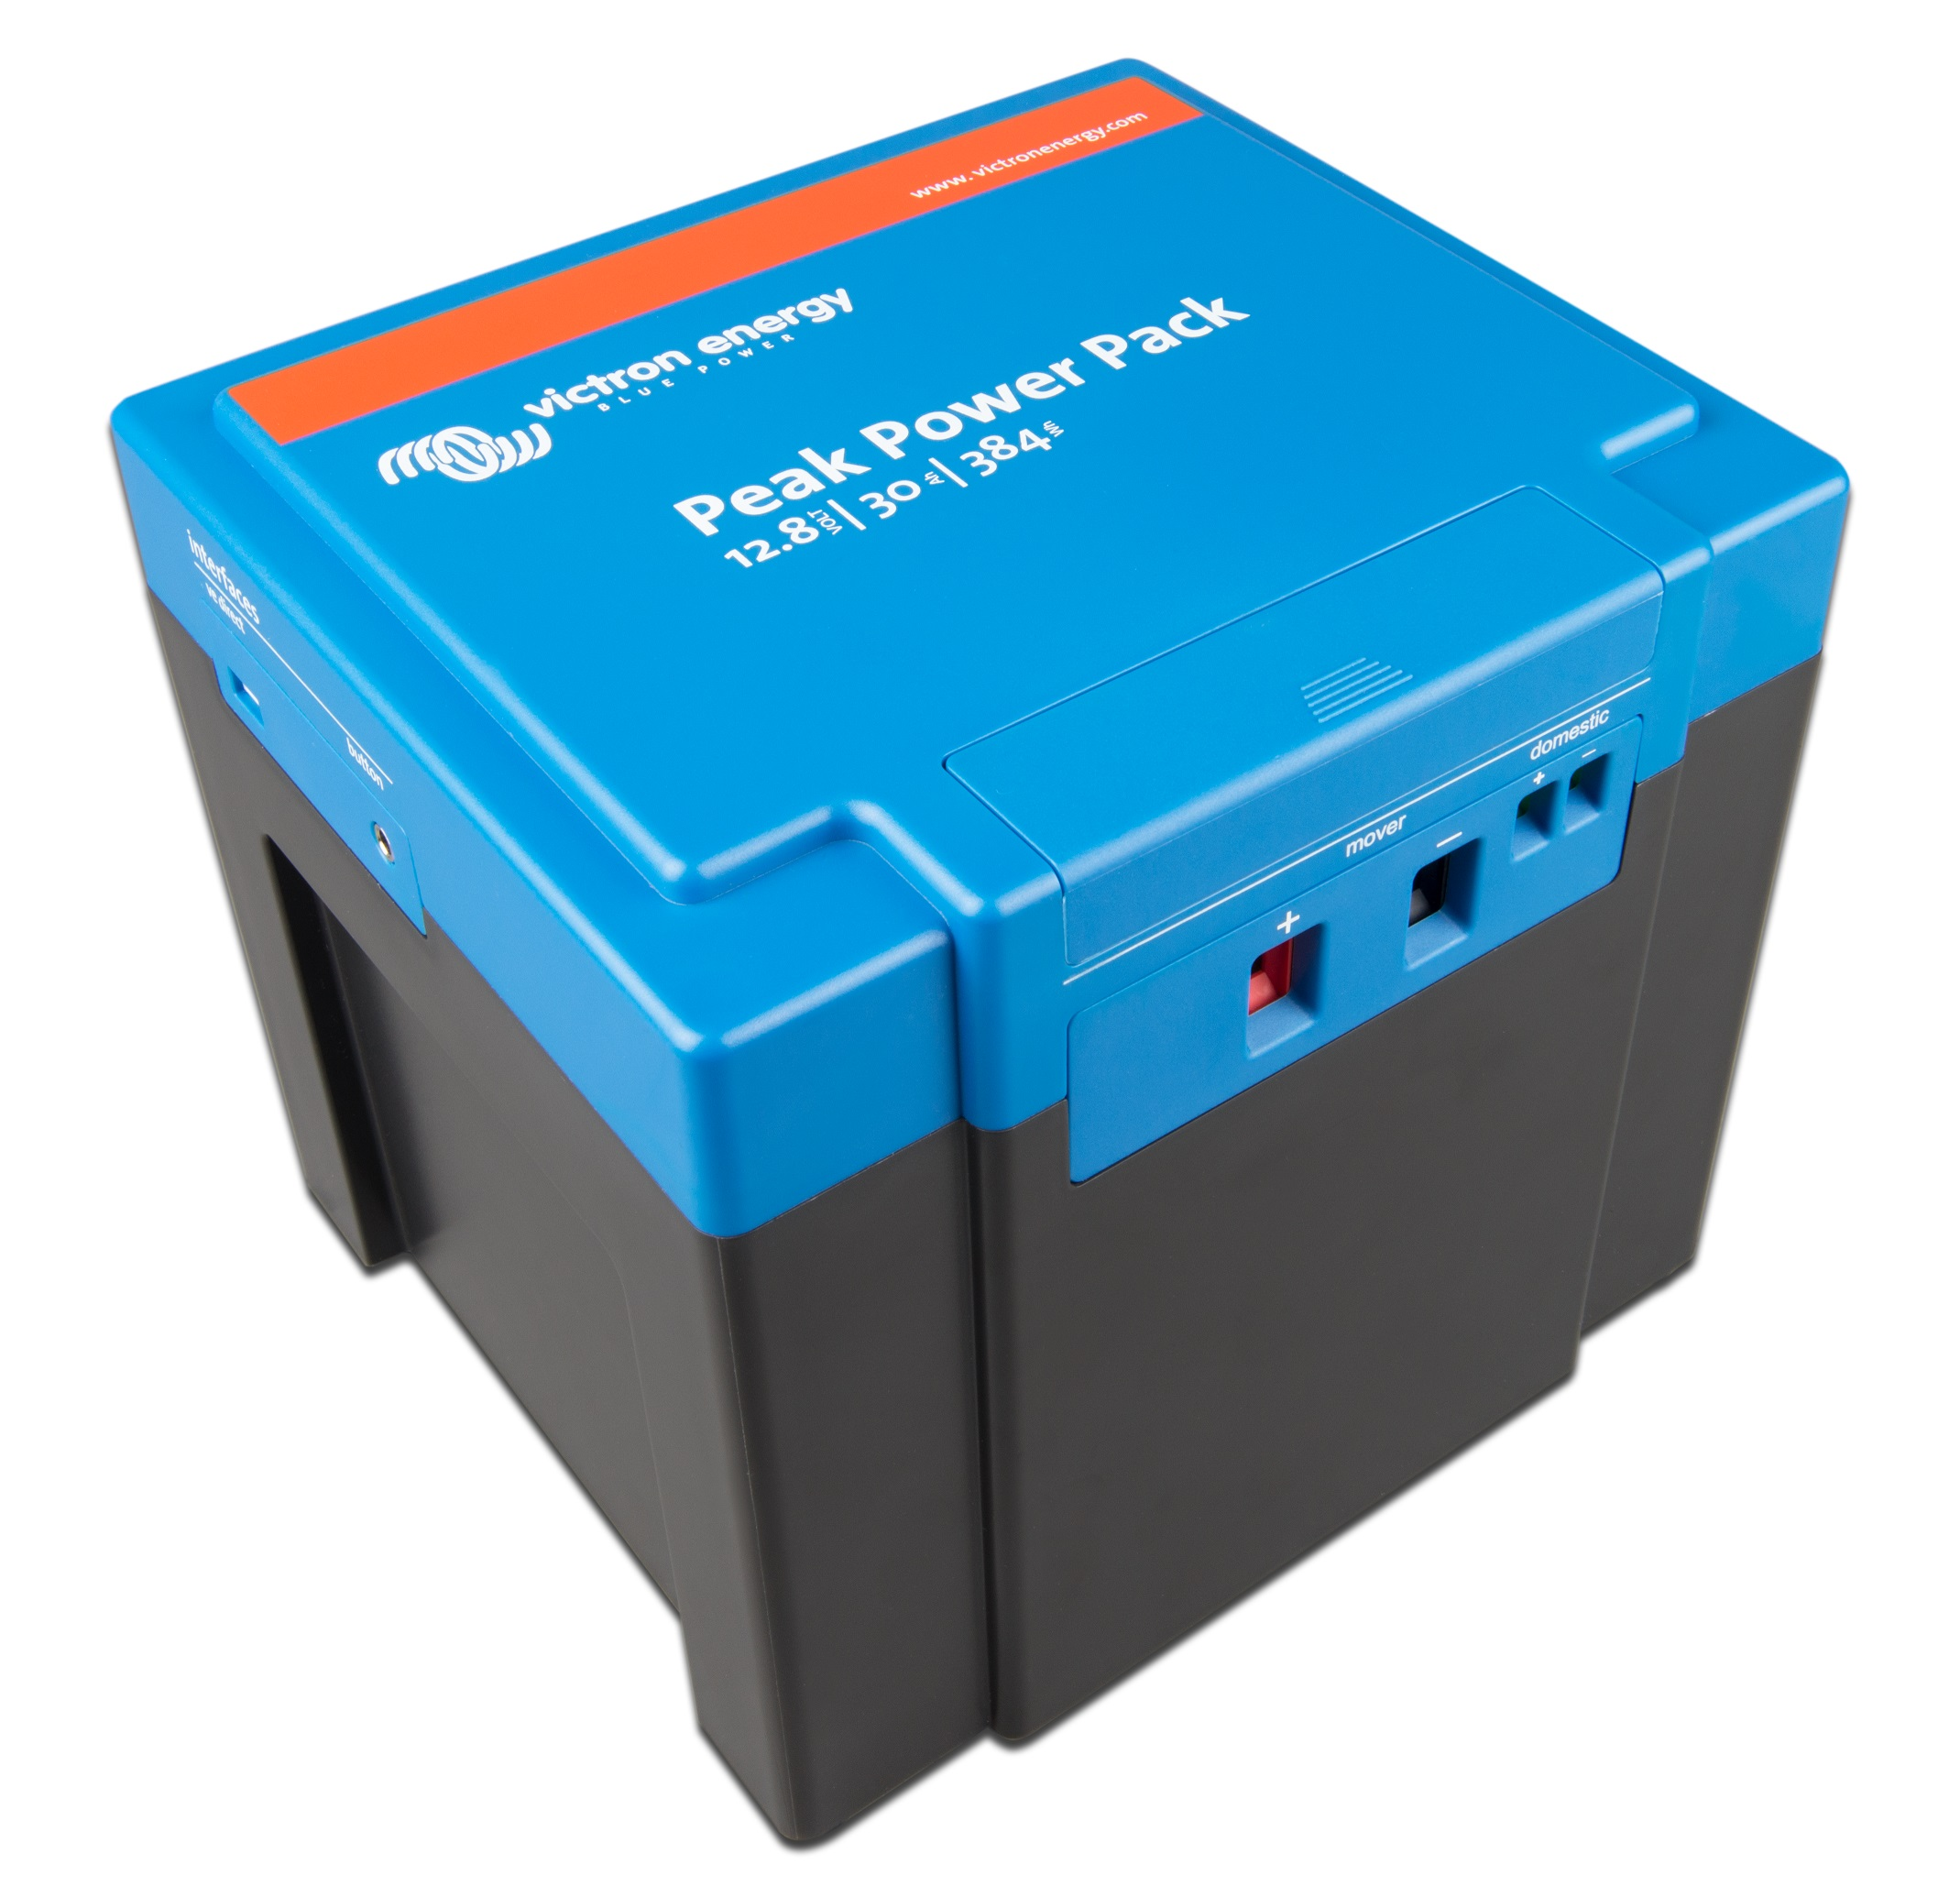 PEAK POWER PACK 12,8V/8AH - 102WH - VICTRON ENERGY